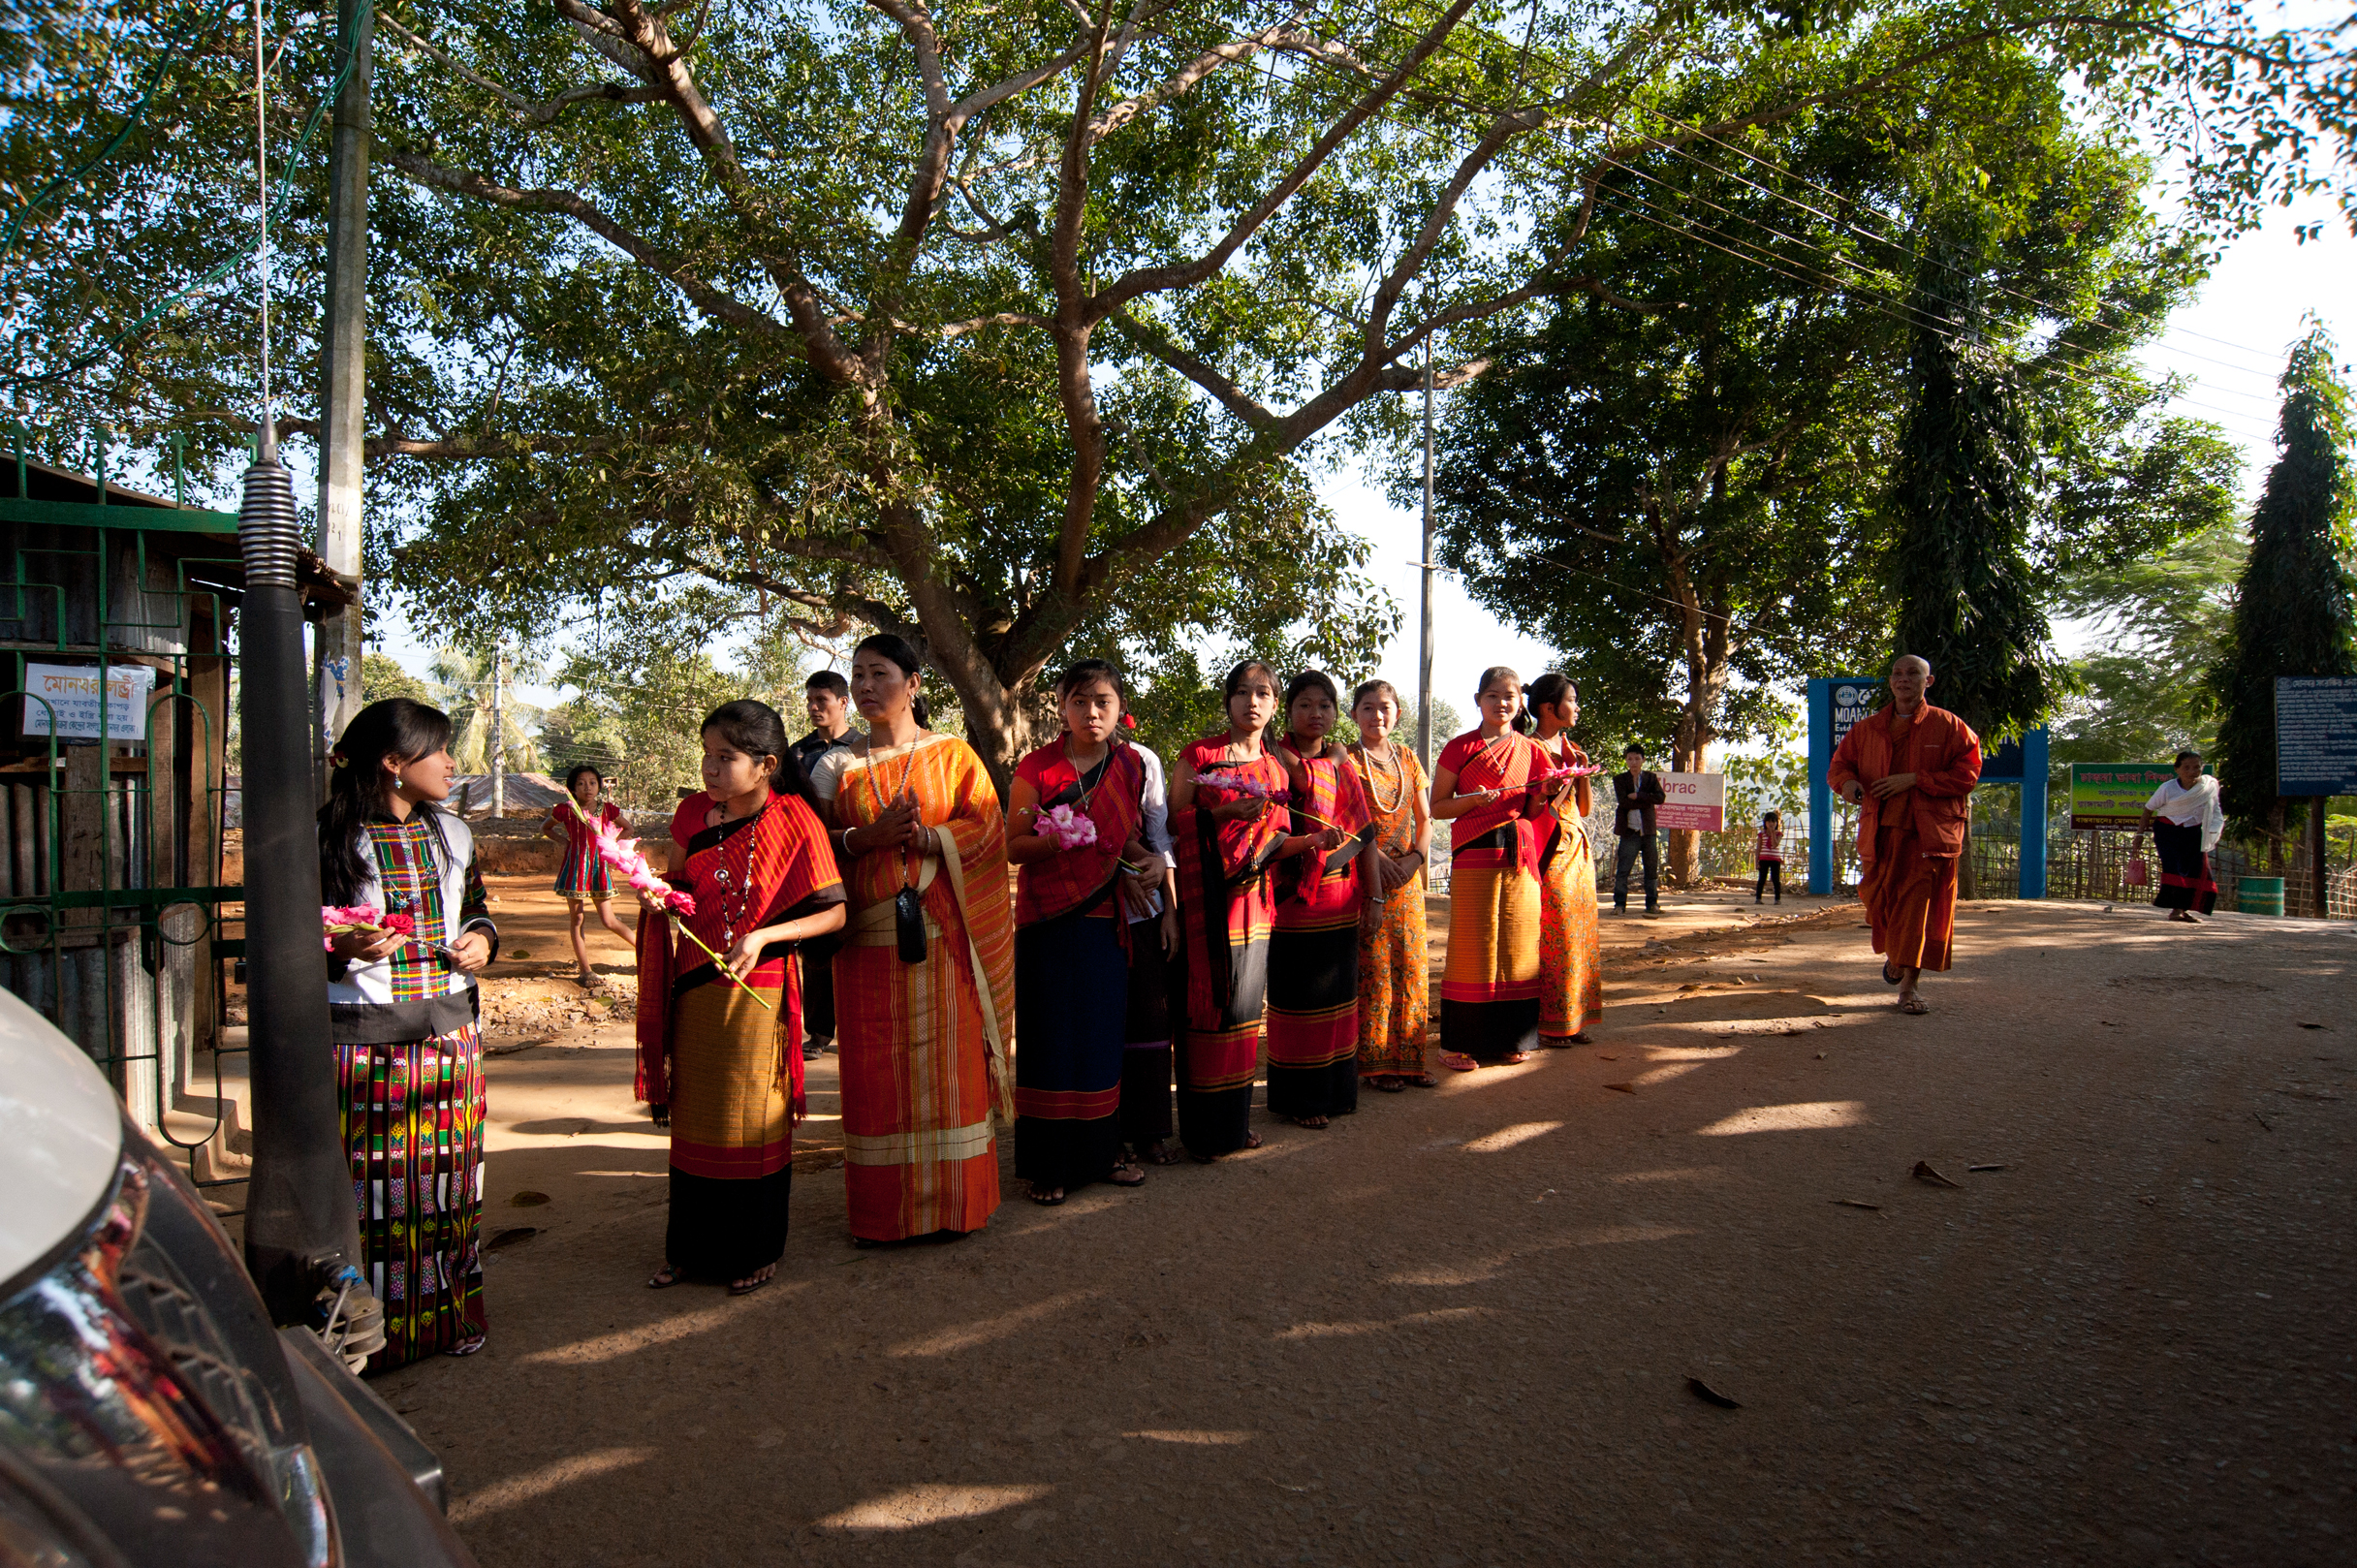 A colorful welcome – students of Moanoghar await our arrival, wearing traditional Chakma (and other tribal) attire. Photo by Shinobu Suzuki.